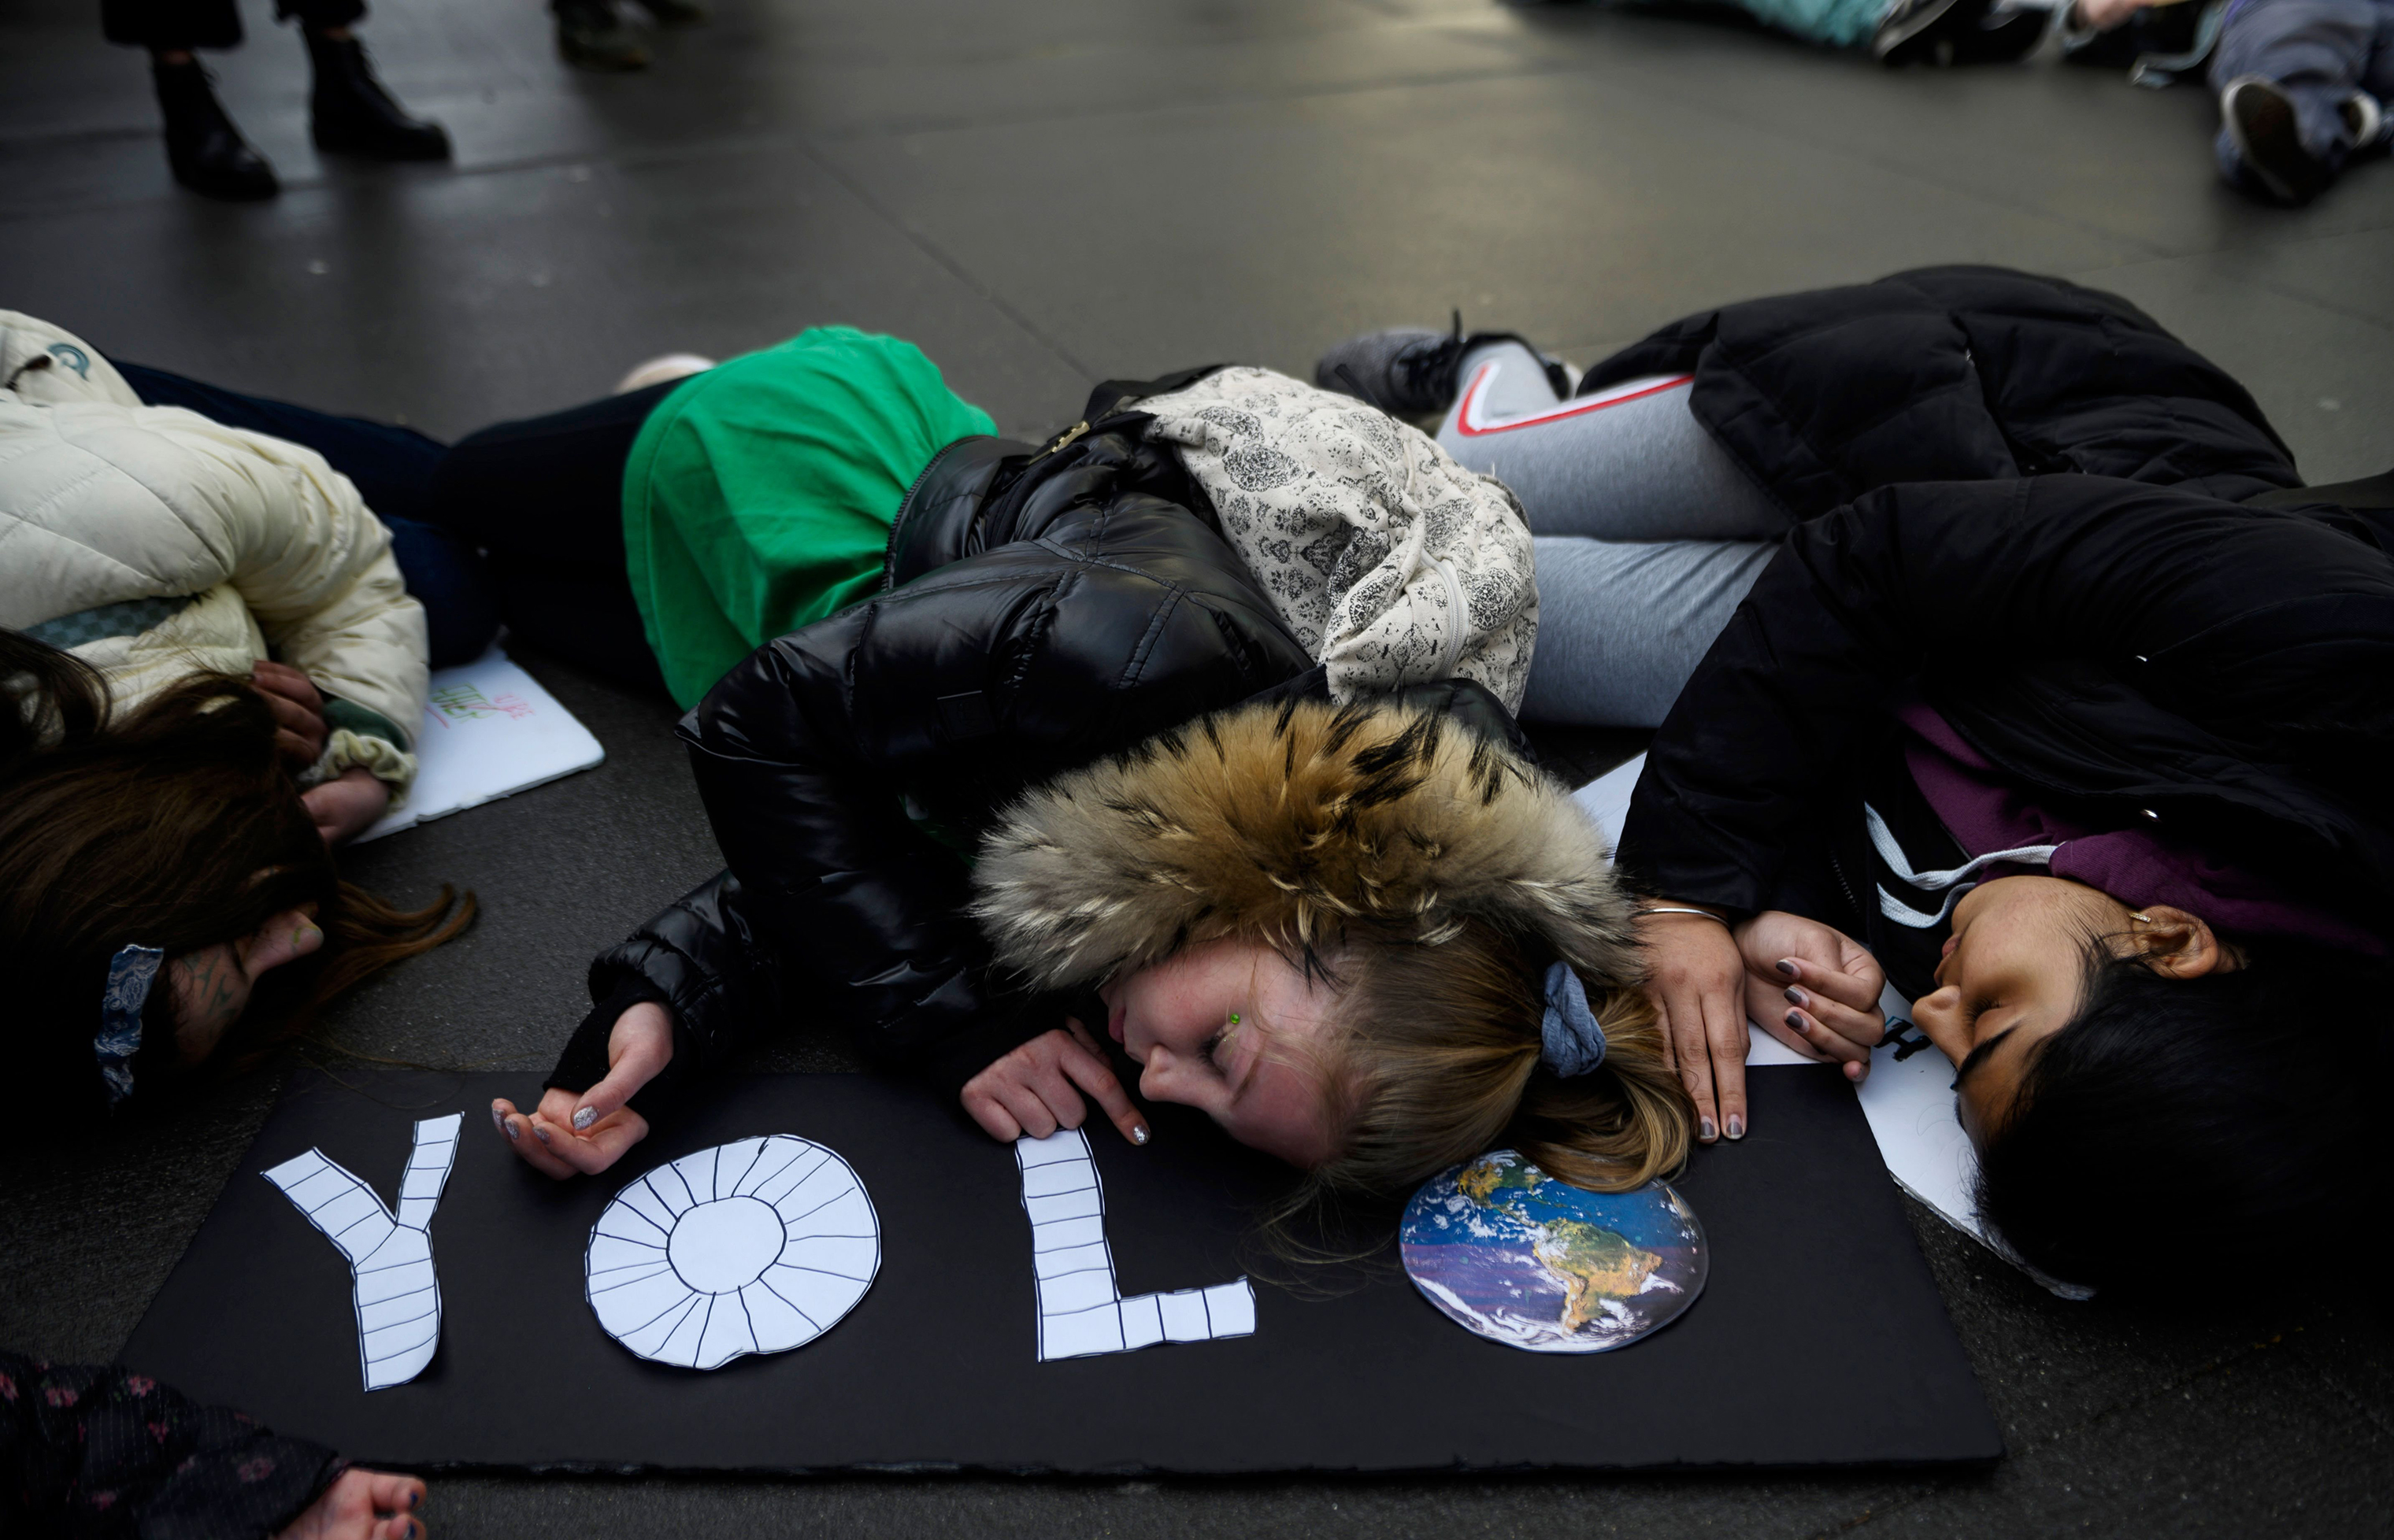 School children taking part on a die-in during a Youth Climate Strike in front of the New York Headquarters of the United Nations on March 15, 2019 in New York City.